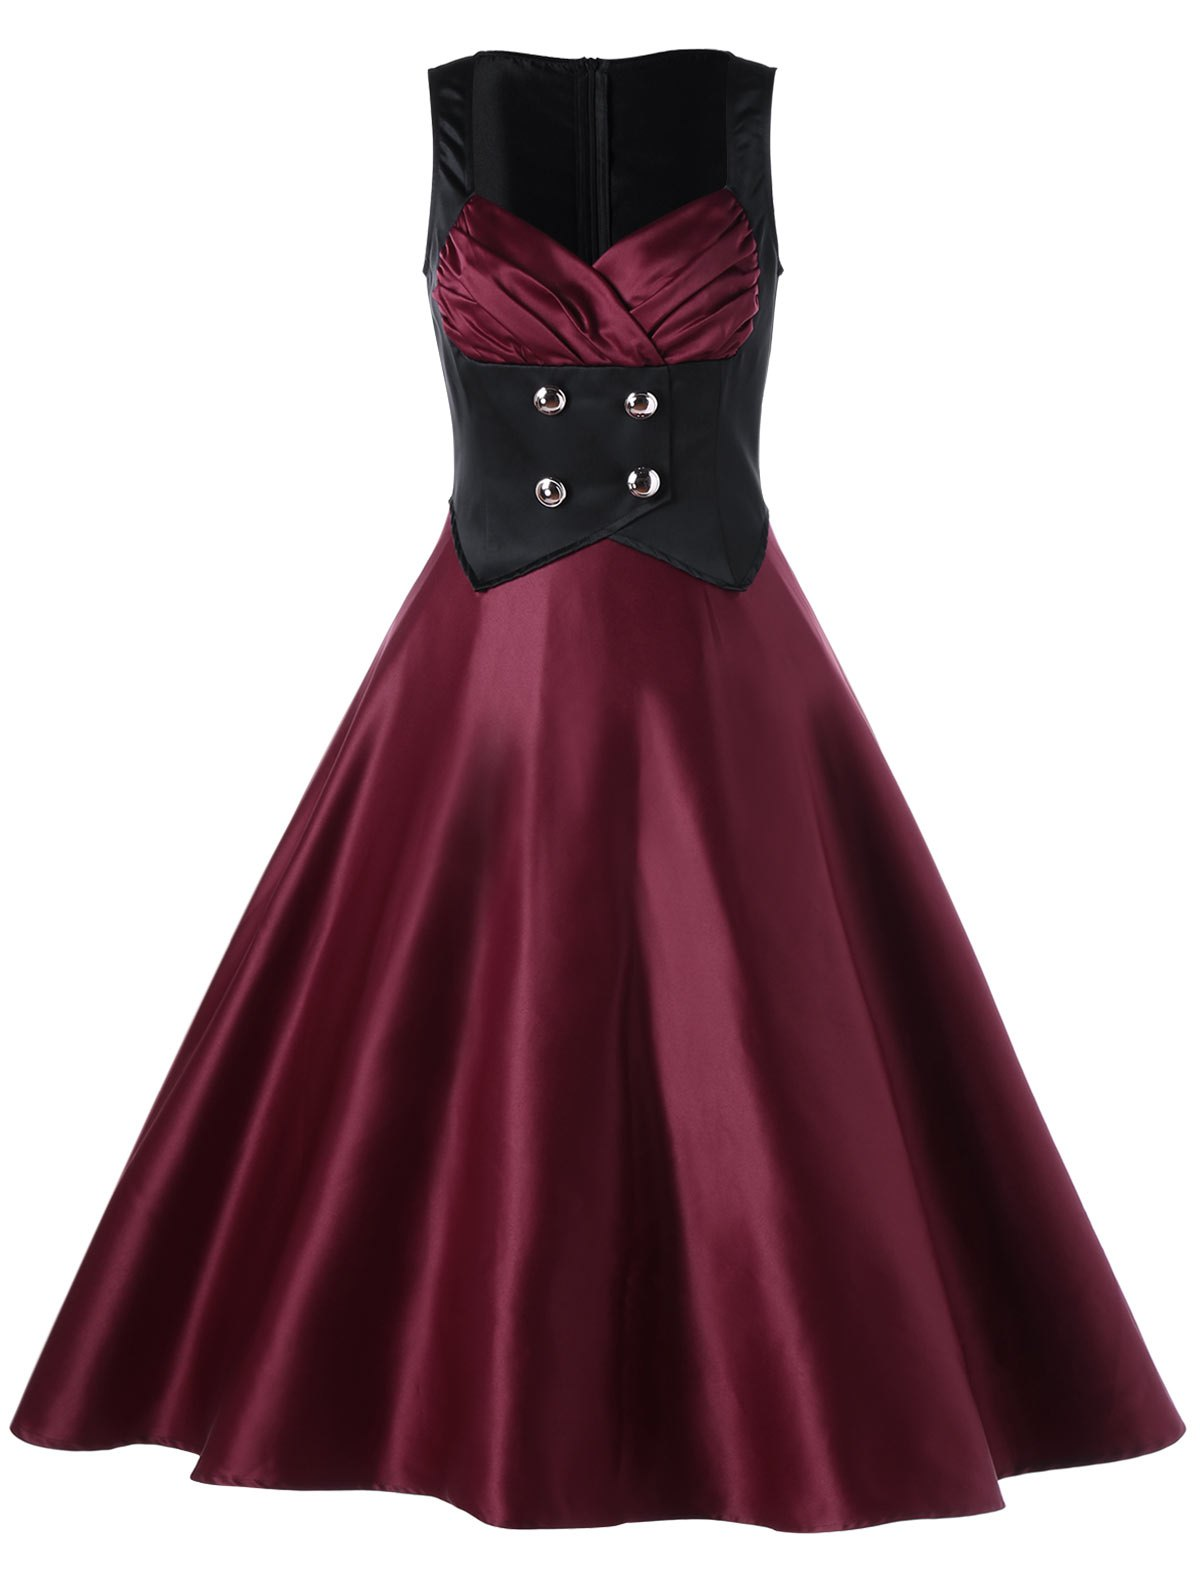 Sweetheart Neck Semi Cocktail Vintage Skater DressWOMEN<br><br>Size: L; Color: WINE RED; Style: Vintage; Material: Polyester; Silhouette: A-Line; Dresses Length: Mid-Calf; Neckline: Sweetheart Neck; Sleeve Length: Sleeveless; Pattern Type: Patchwork; With Belt: No; Season: Summer; Weight: 0.4500kg; Package Contents: 1 x Dress;